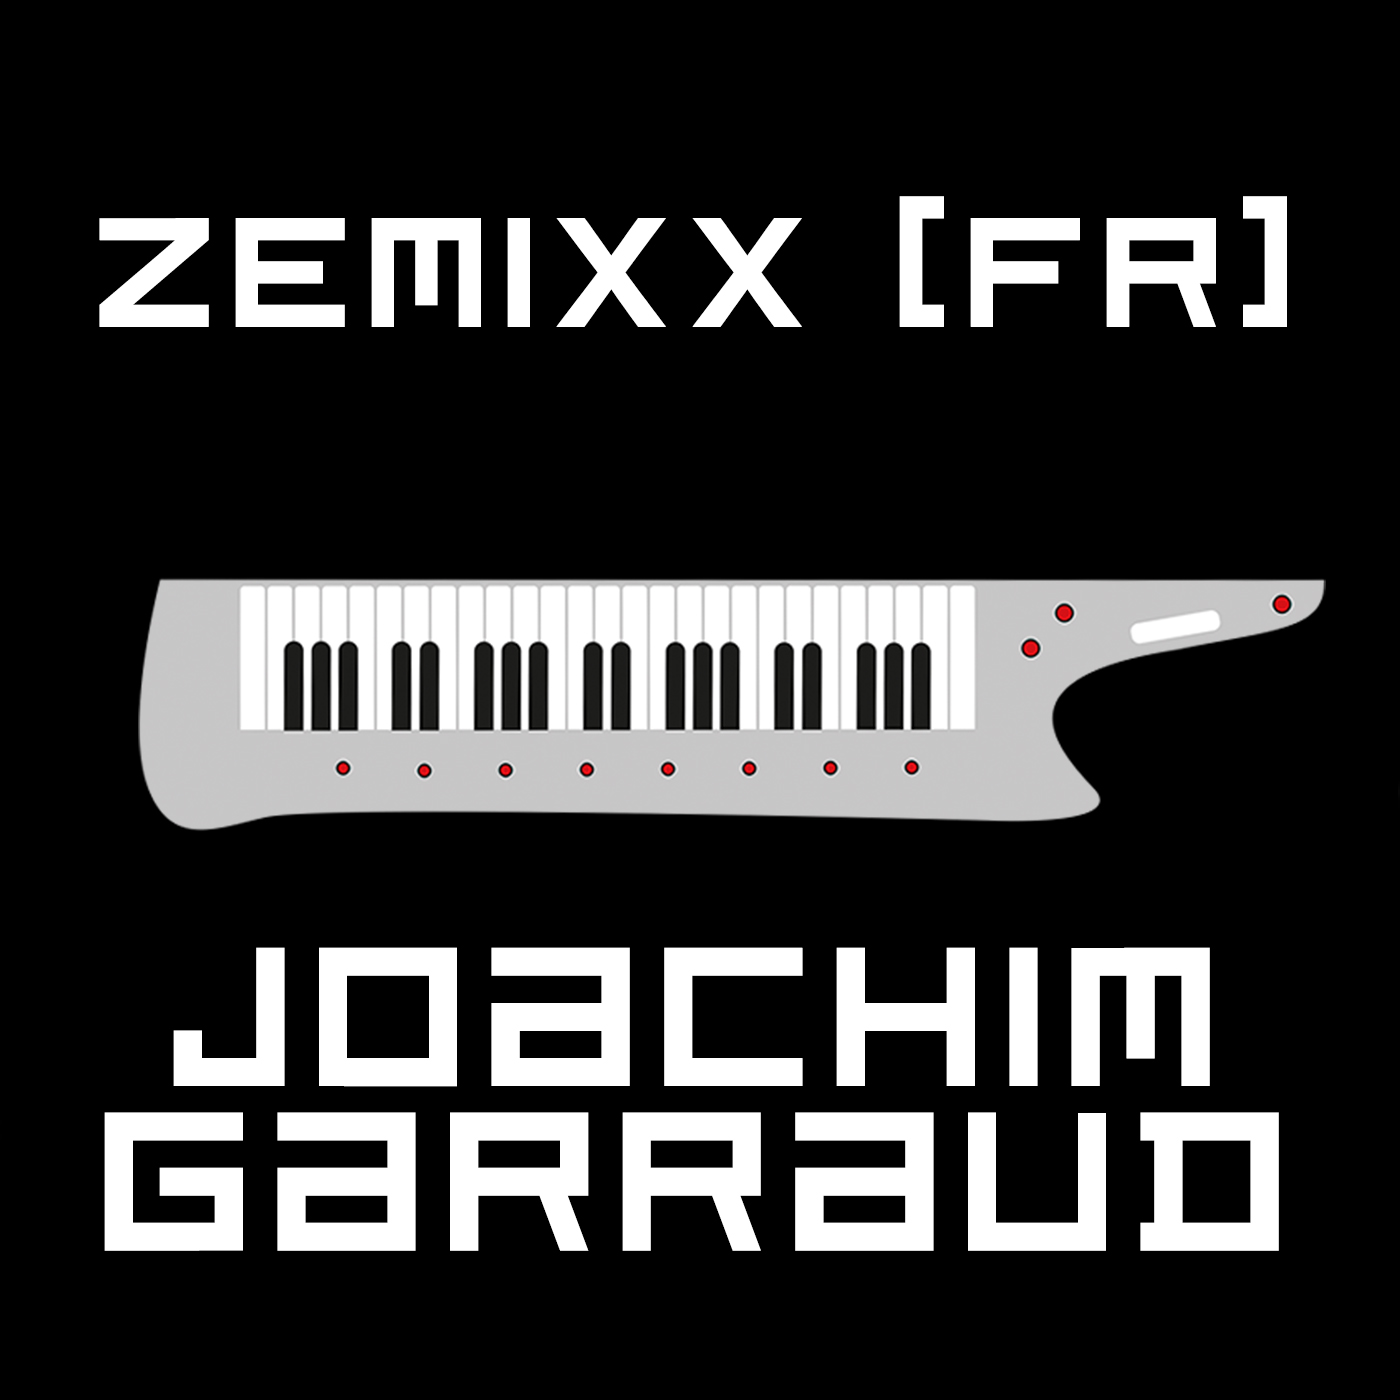 podcast joachim garraud